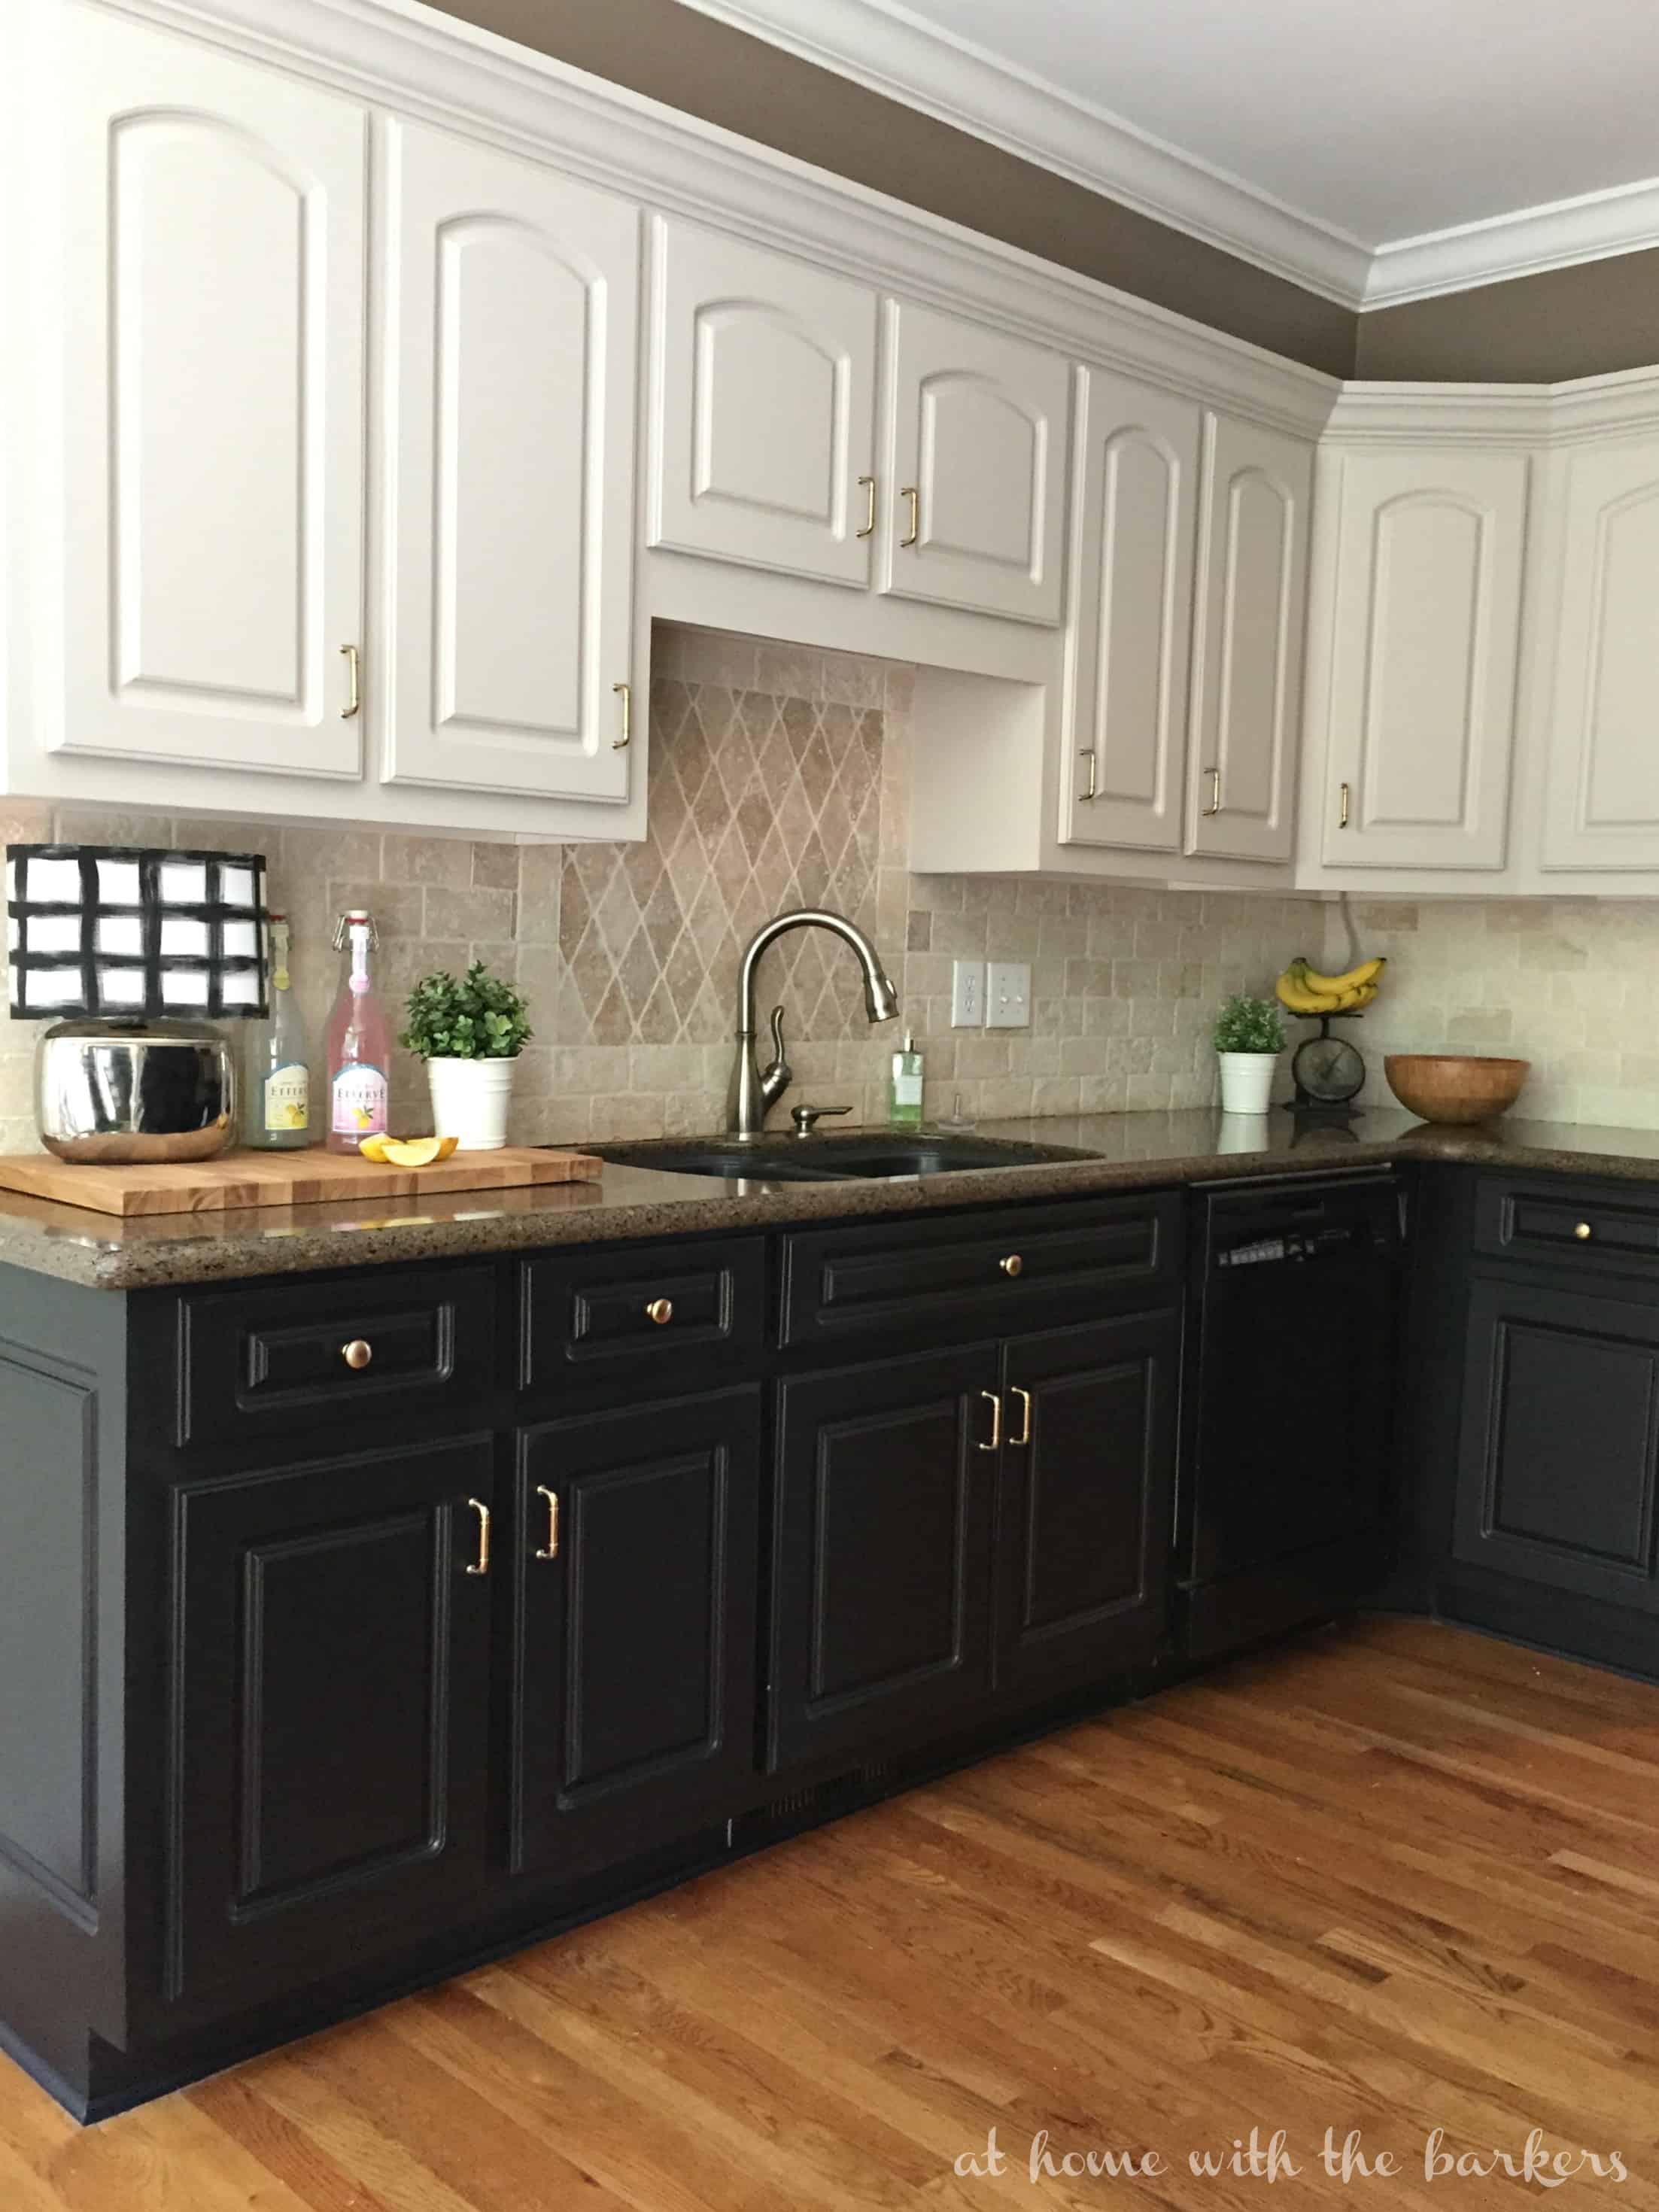 Photos Of Painted Upper Kitchen Cabinets And Wood Lower